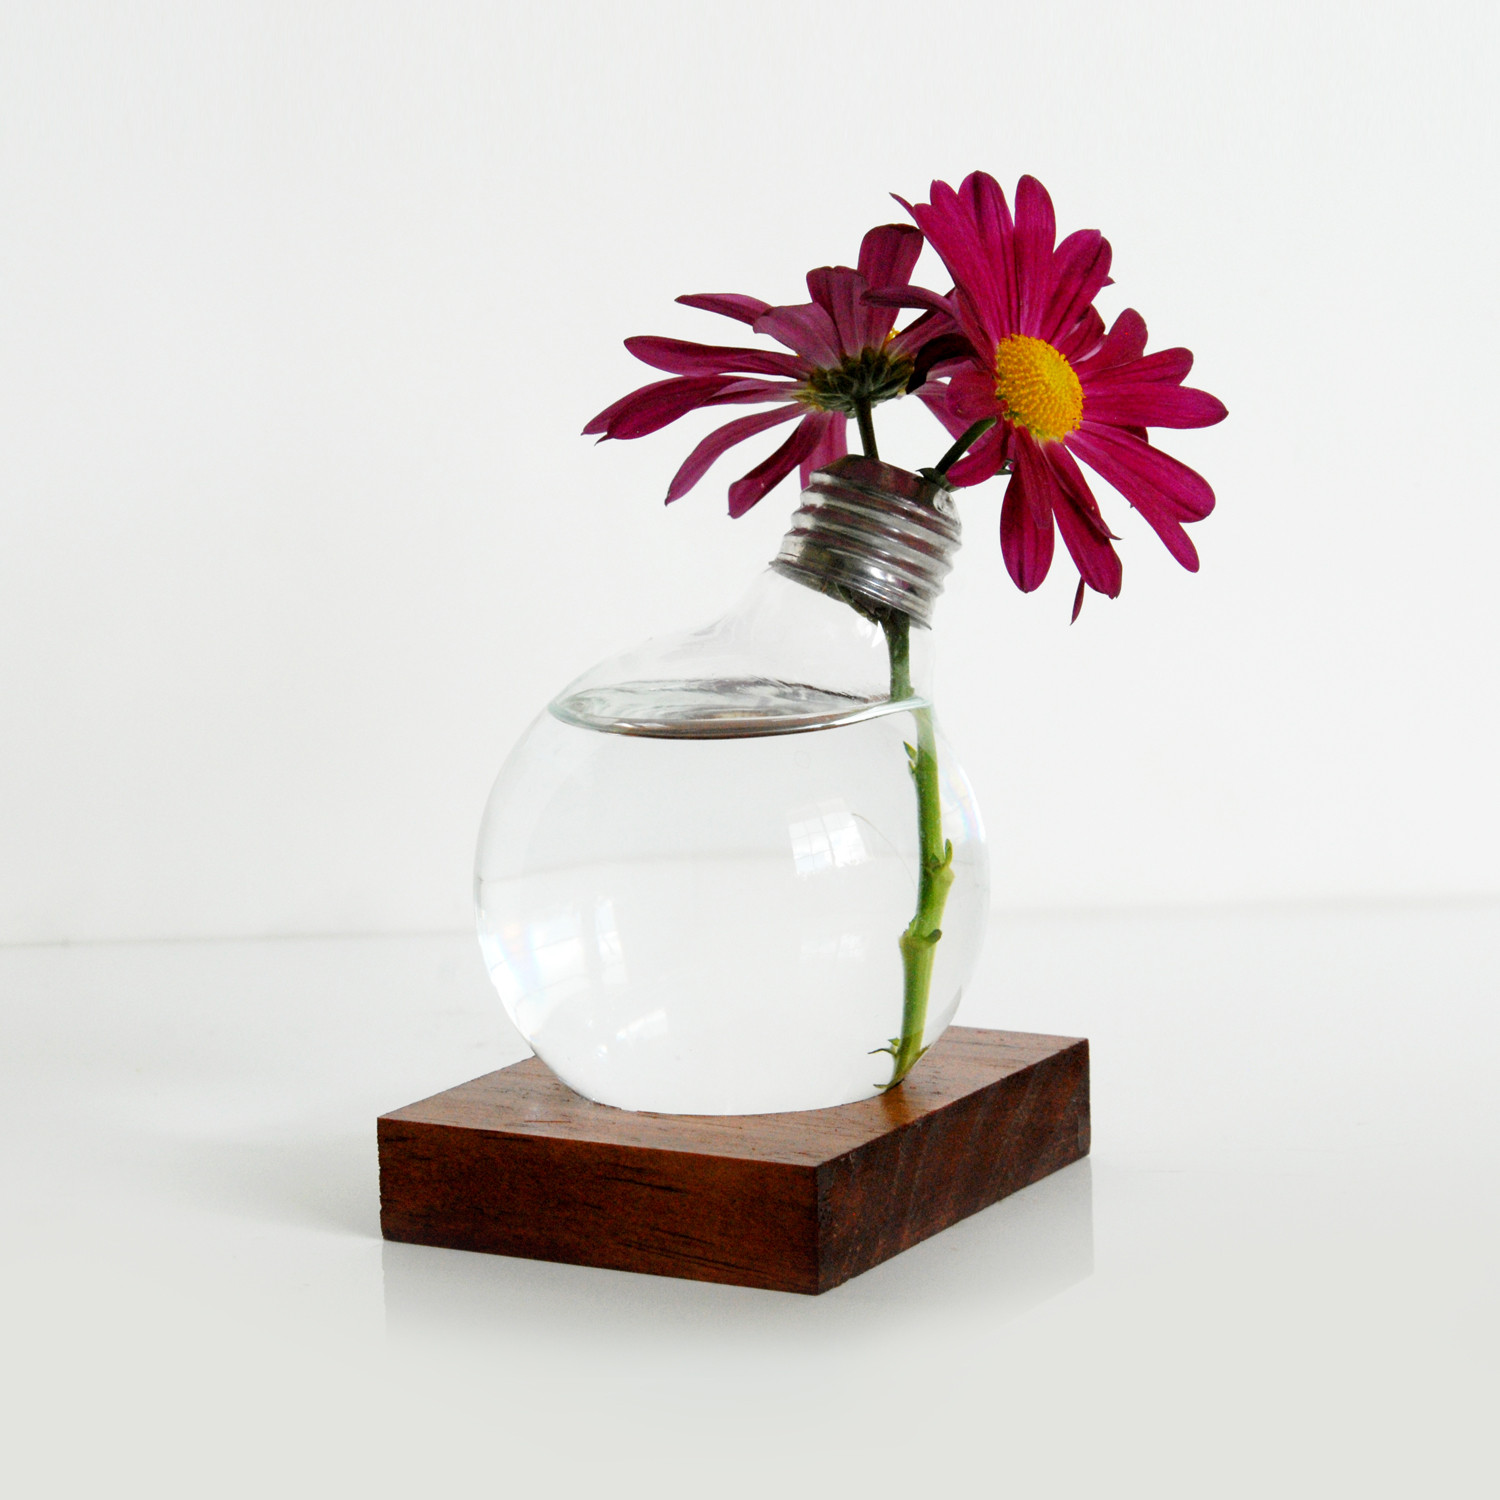 Inviting Modern And Sustainable C House By Studio Arthur: Repurposed Light Bulb // Vase With Wood Base